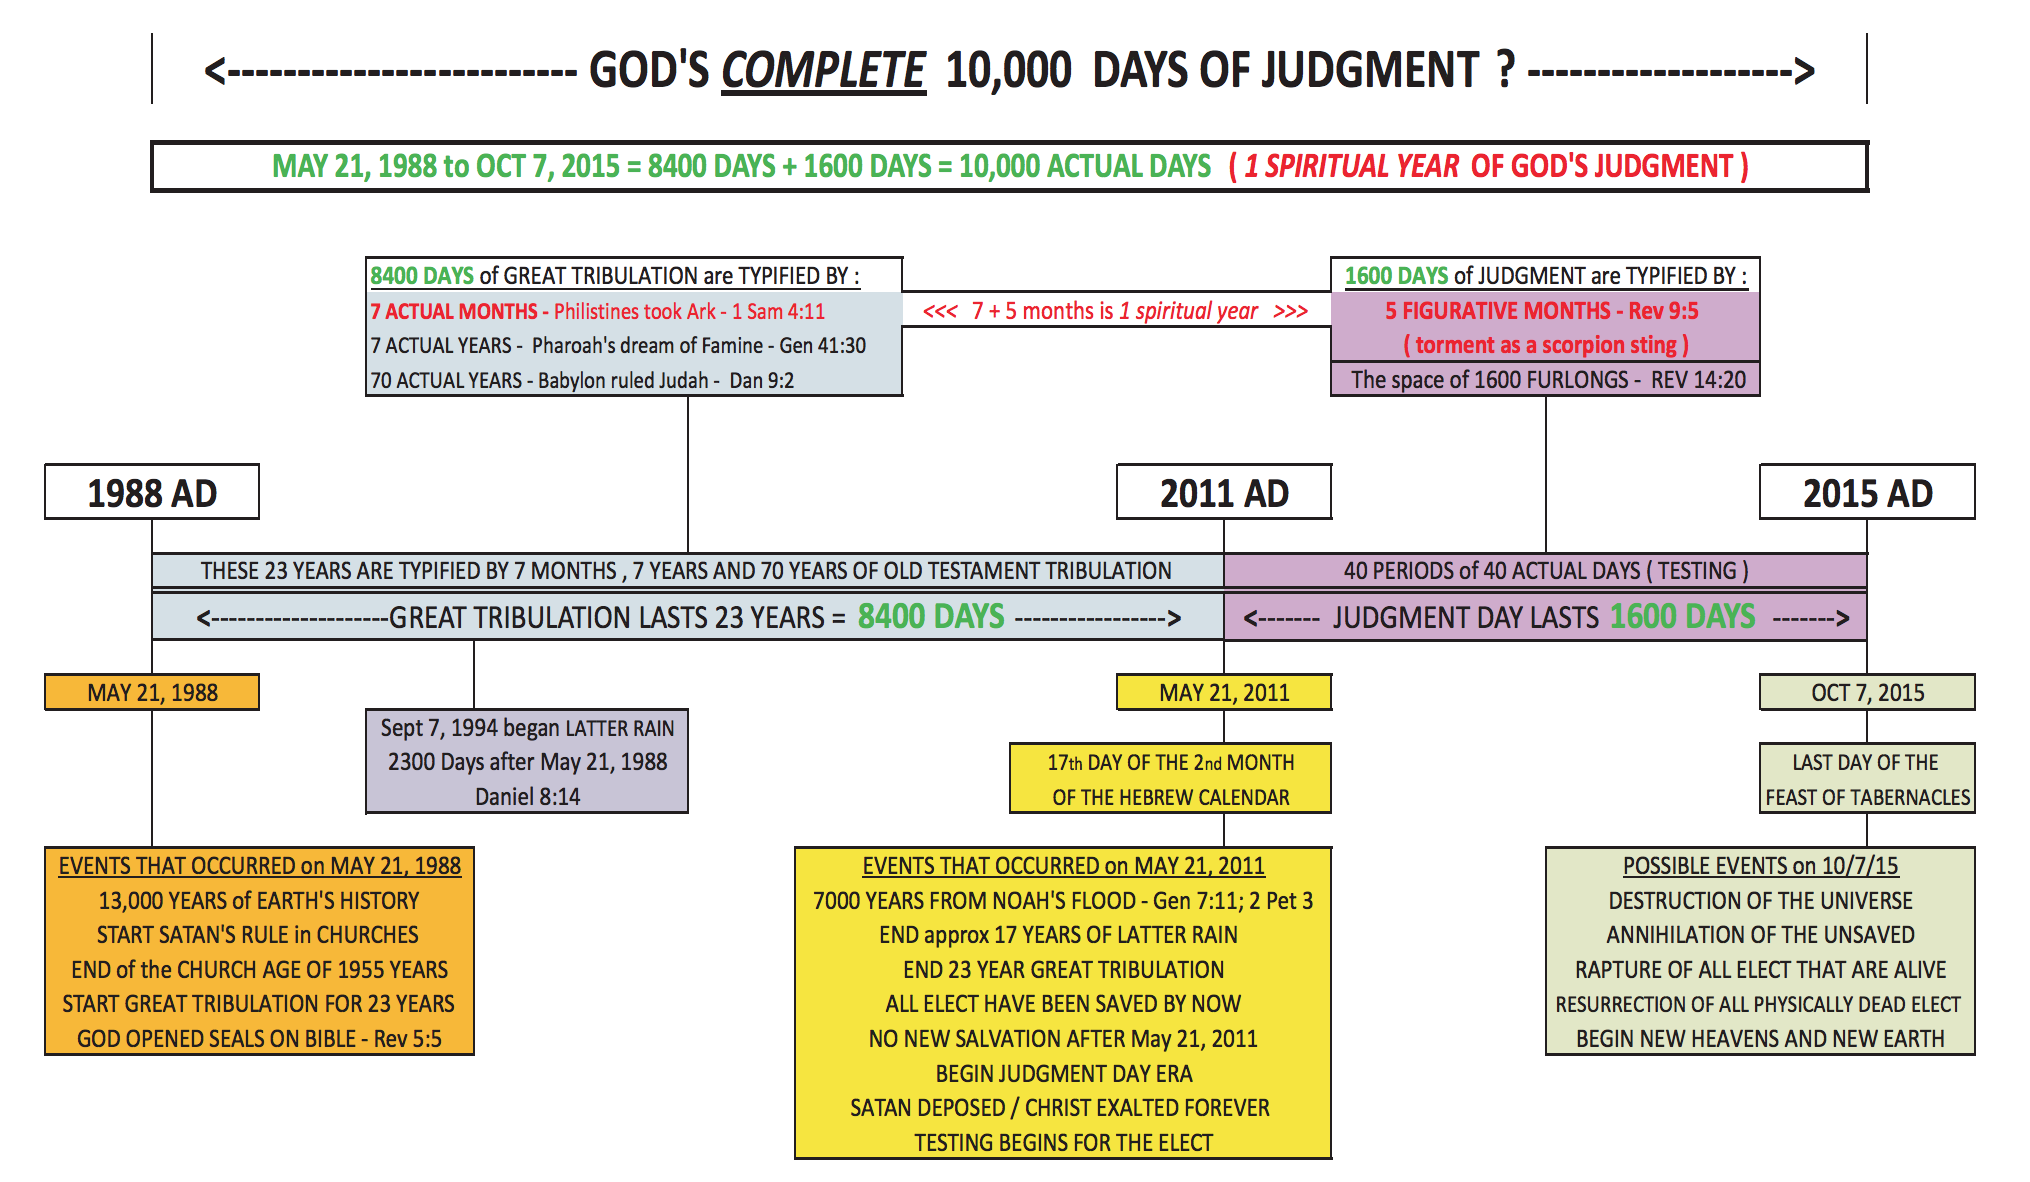 ebible2.com wp-content uploads 2013 05 Judgment-timeline-with-1600-days.pdf